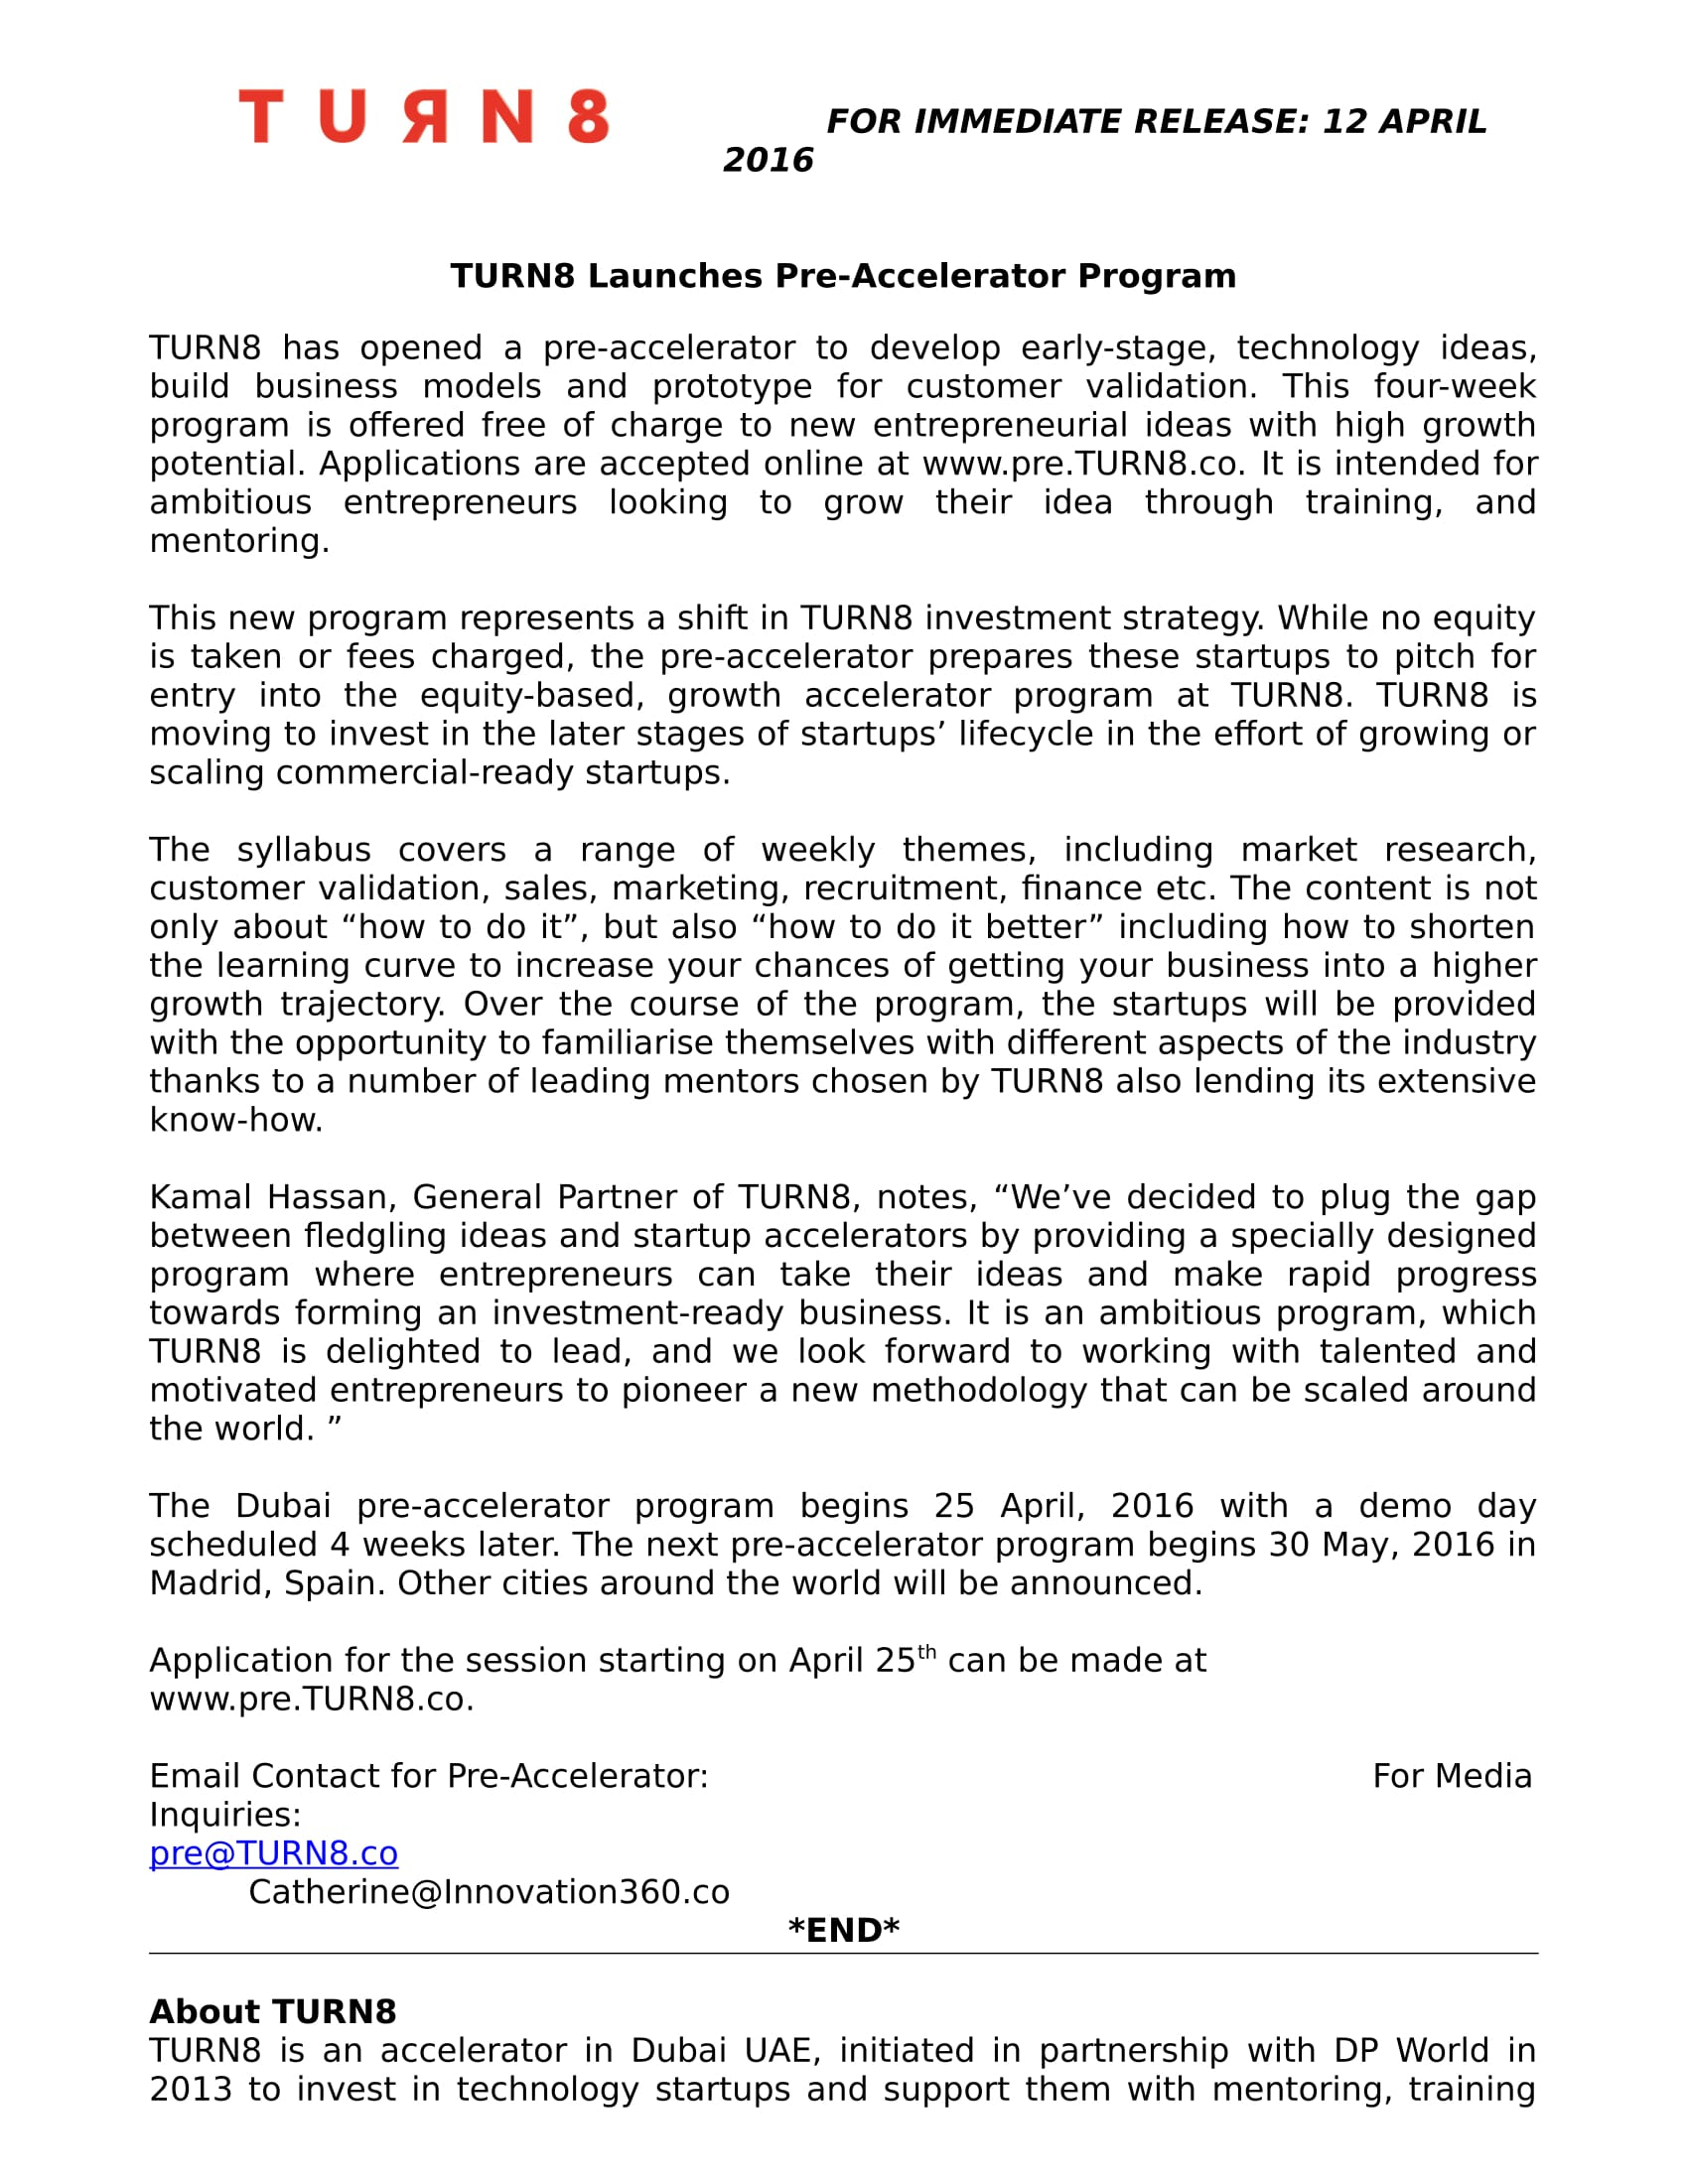 TURN8PreAccelerator_LAUNCH_Press Release-1